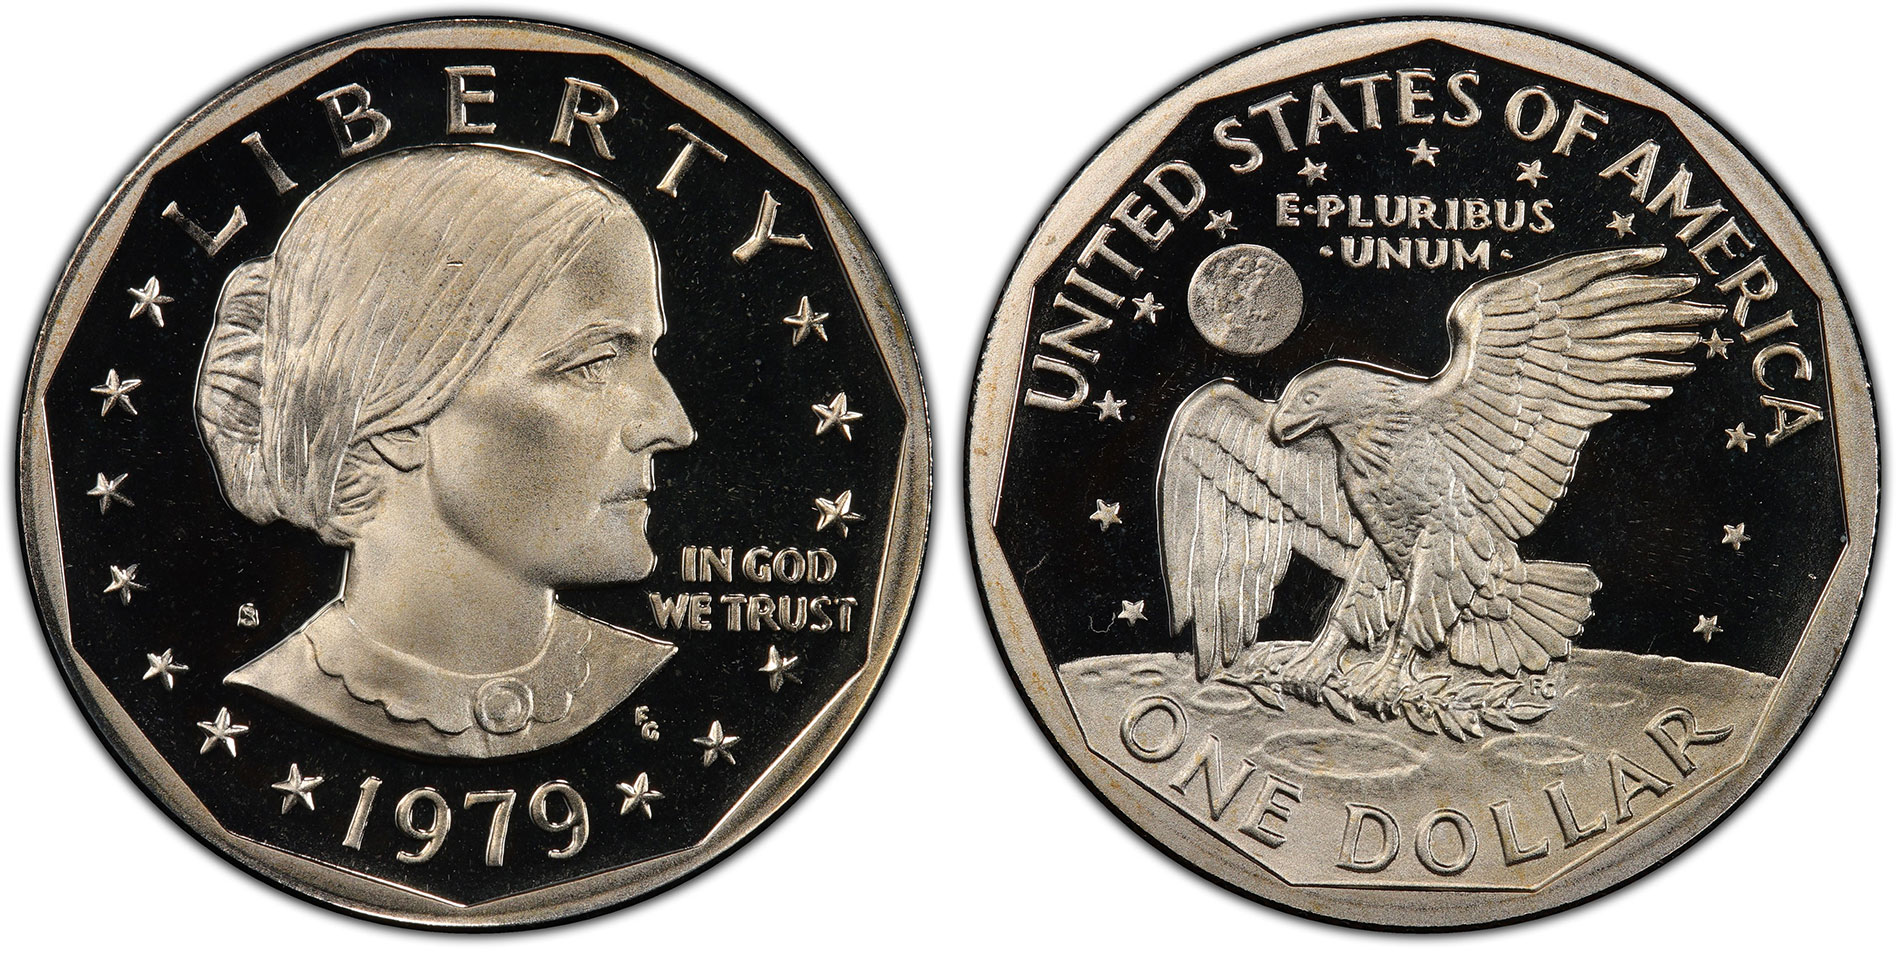 1979 1980 1981 S Susan B Anthony Proof Dollar Run Clad US 3 Coins Complete Set